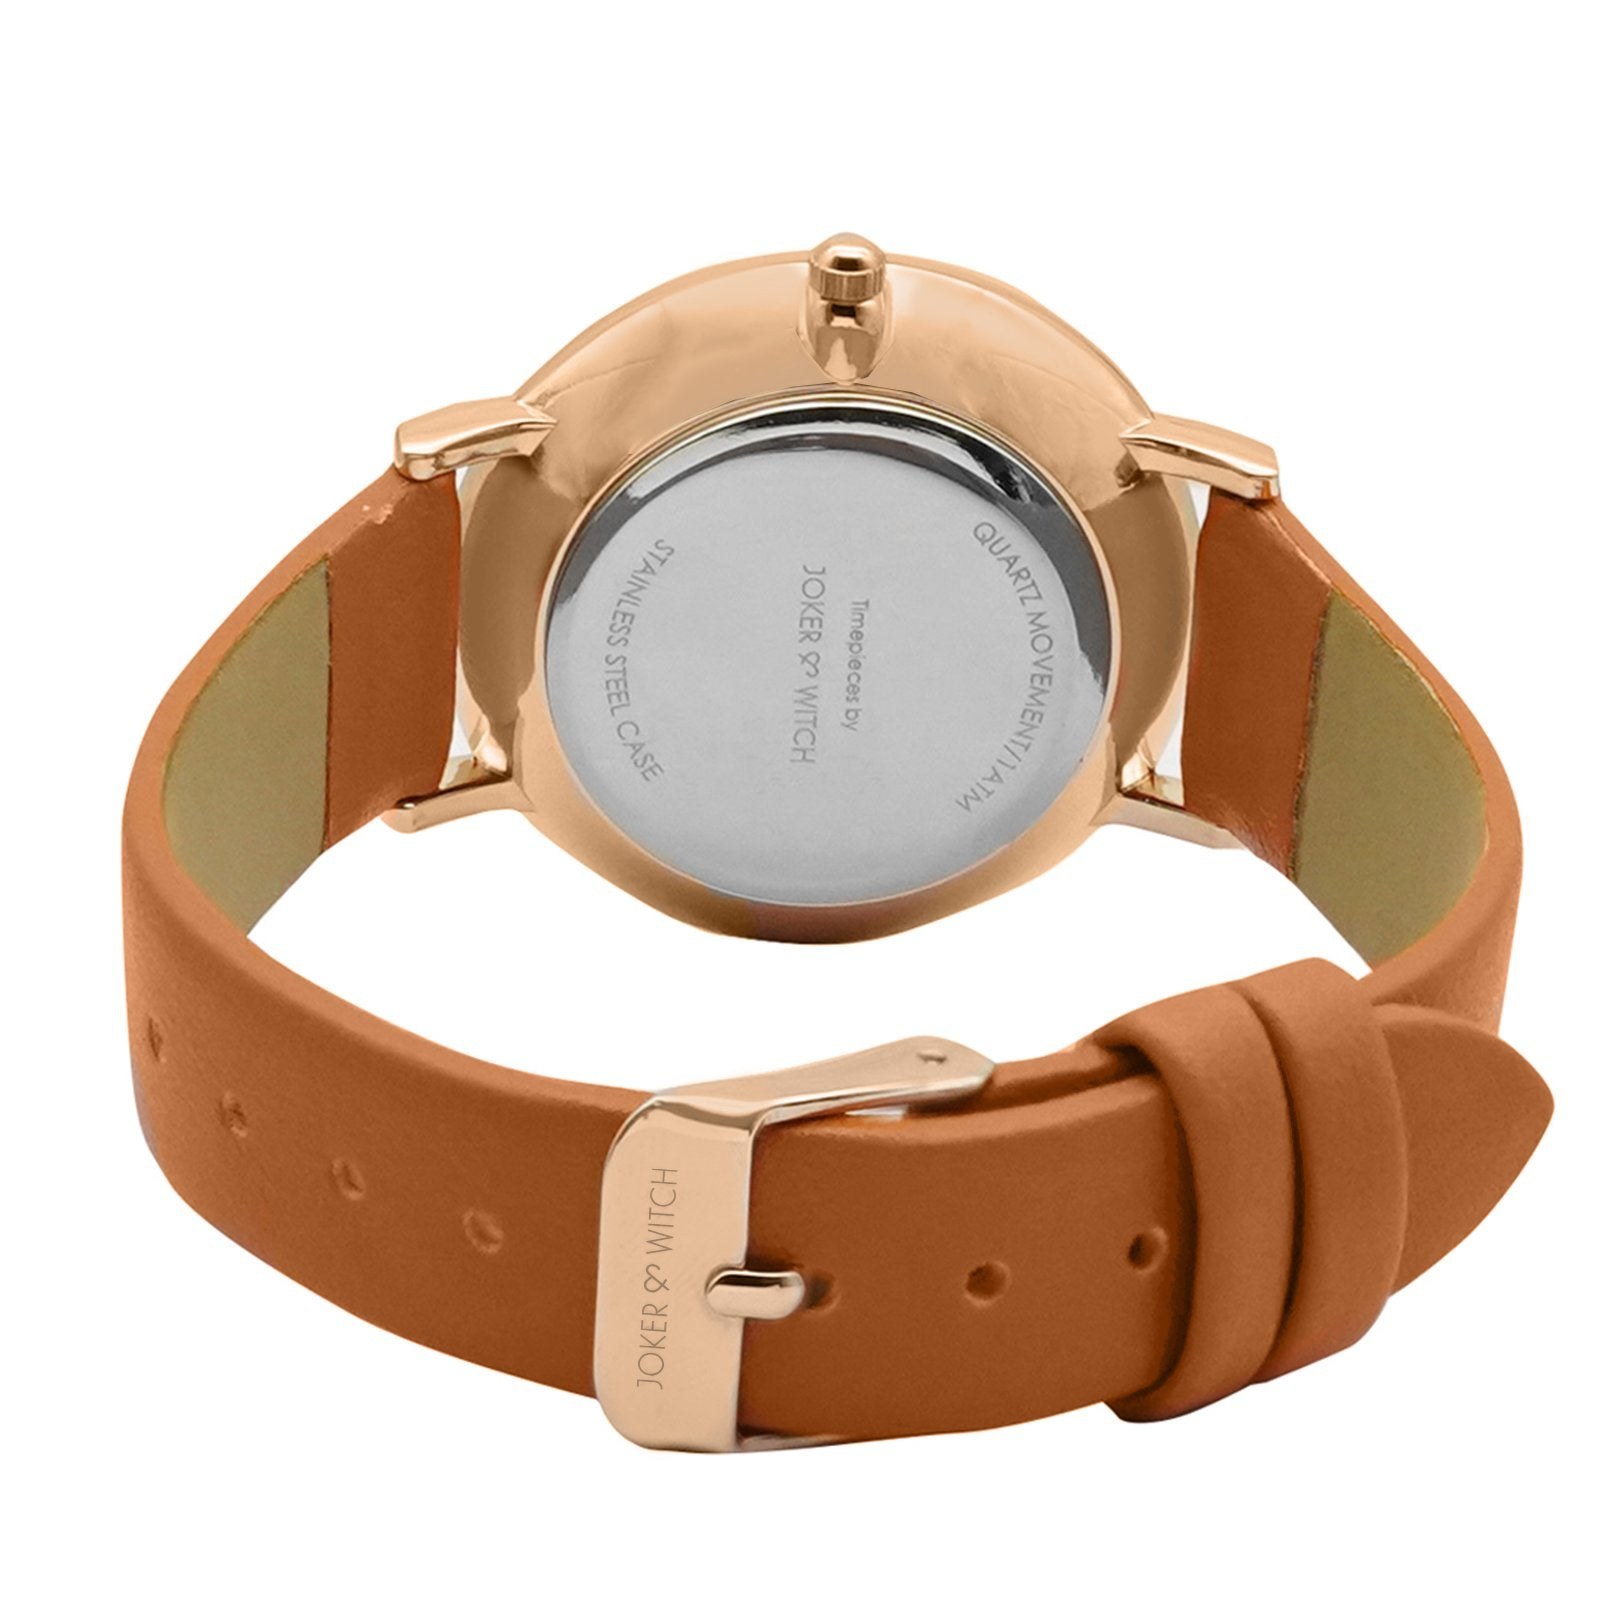 Ines Sleek Tan Watch